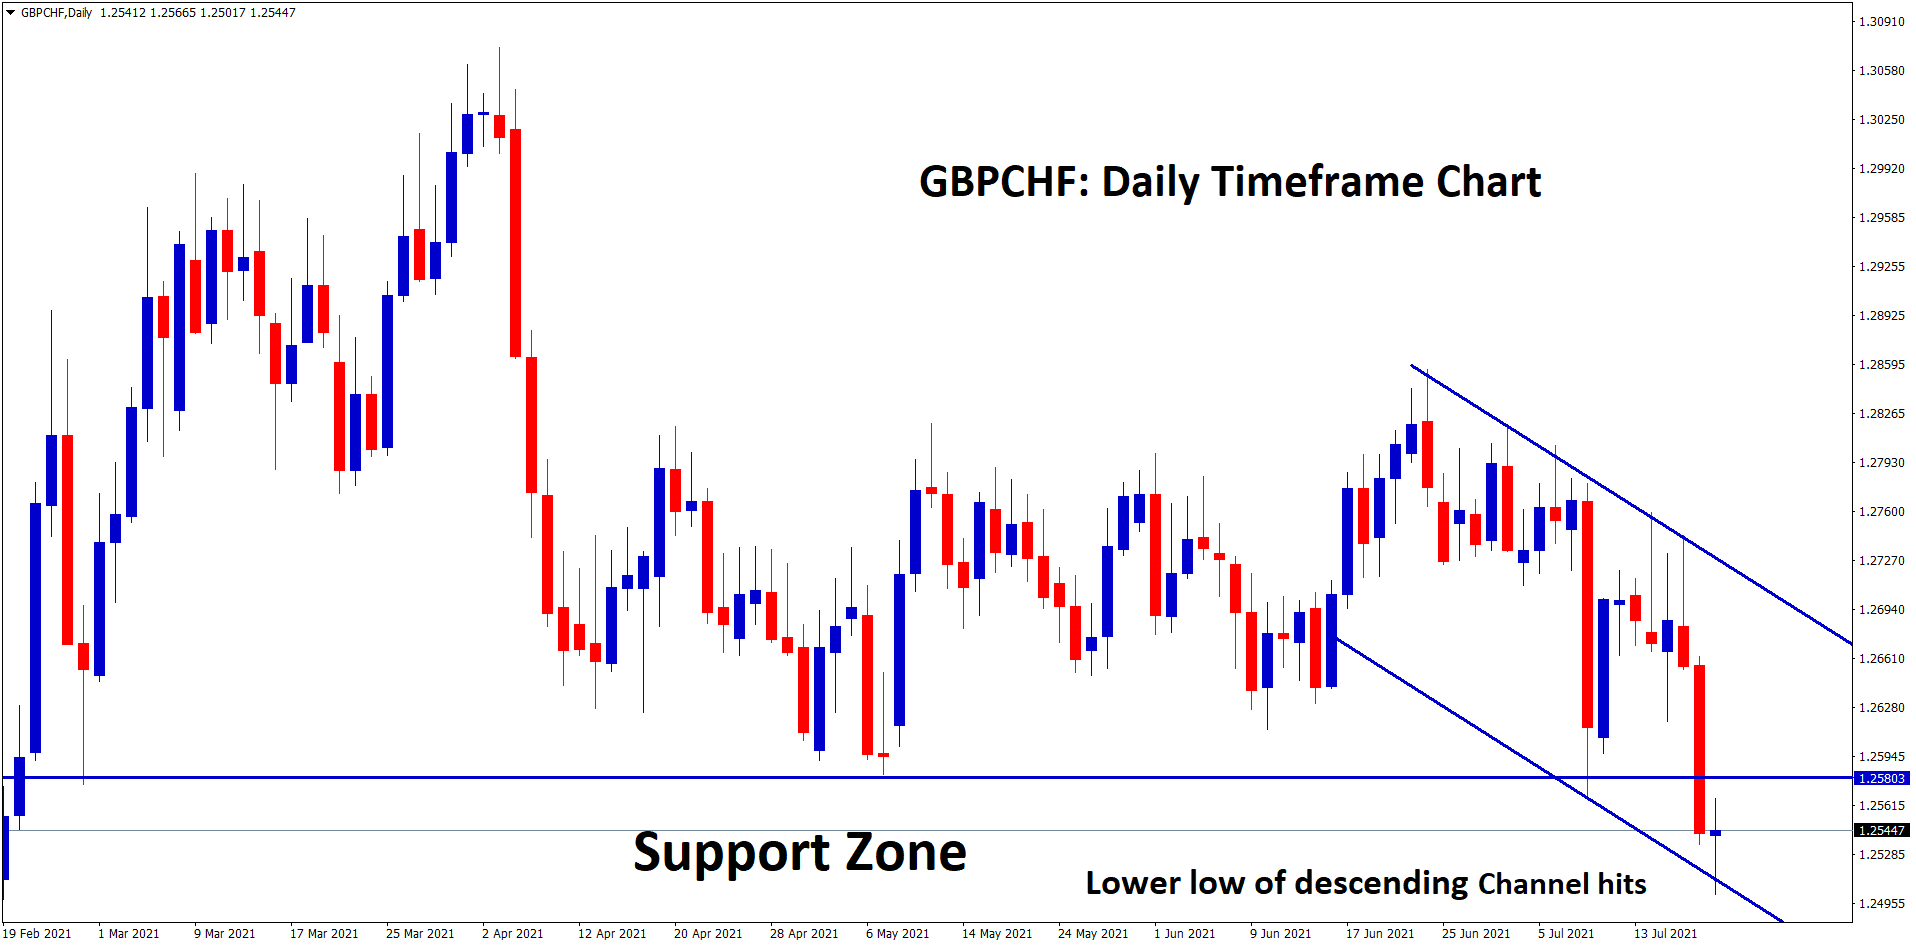 GBPCHF is at the support zone and lower low level of descending channel hits